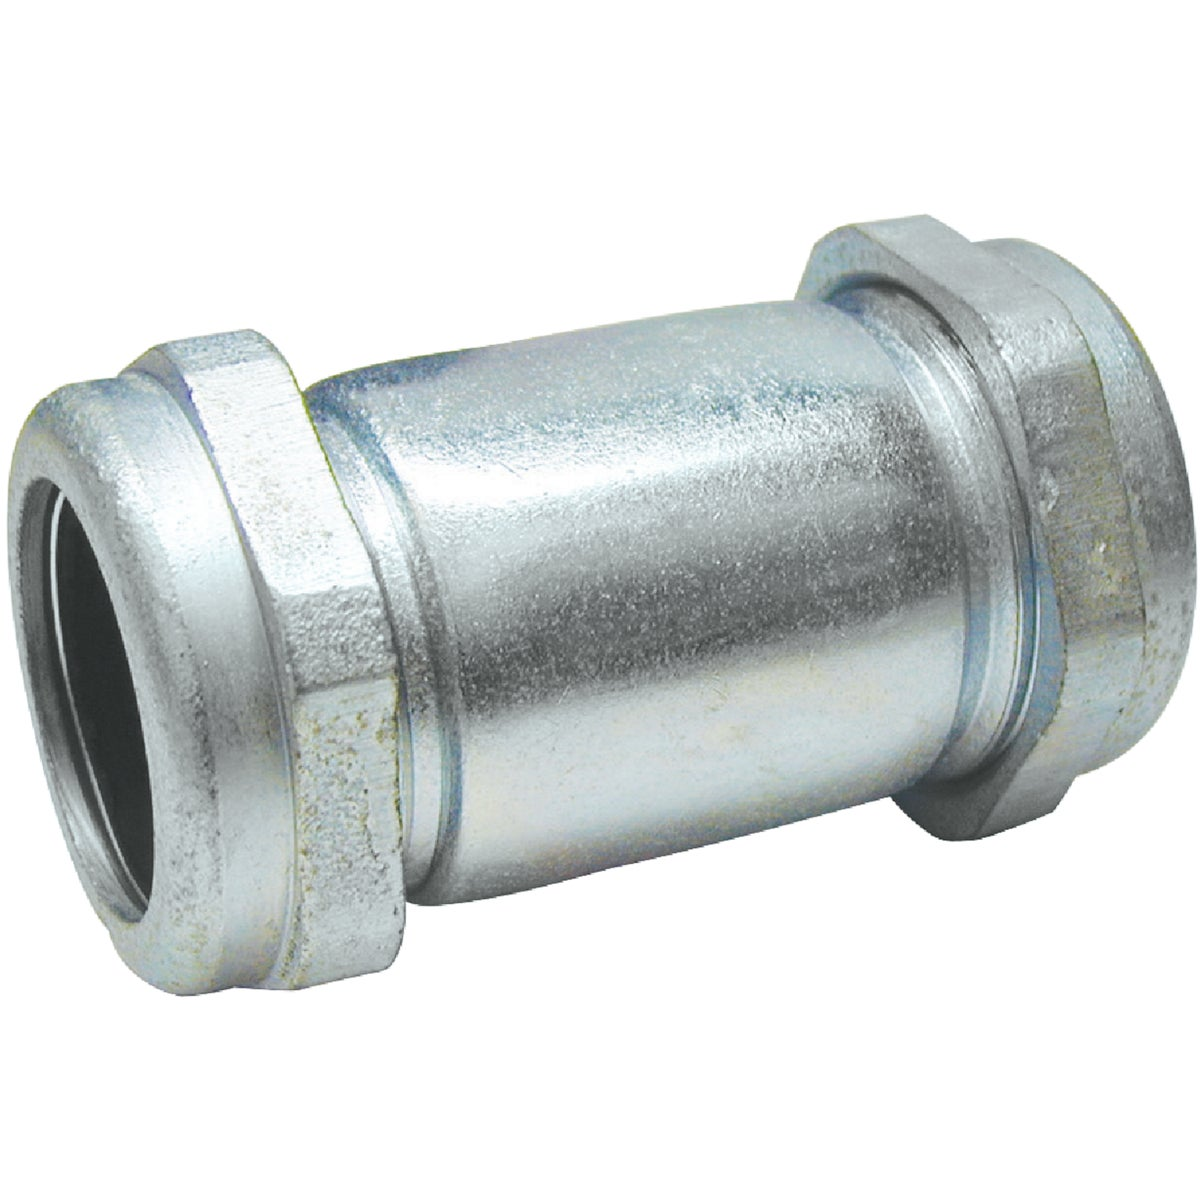 3/4X4 GALV COUPLING